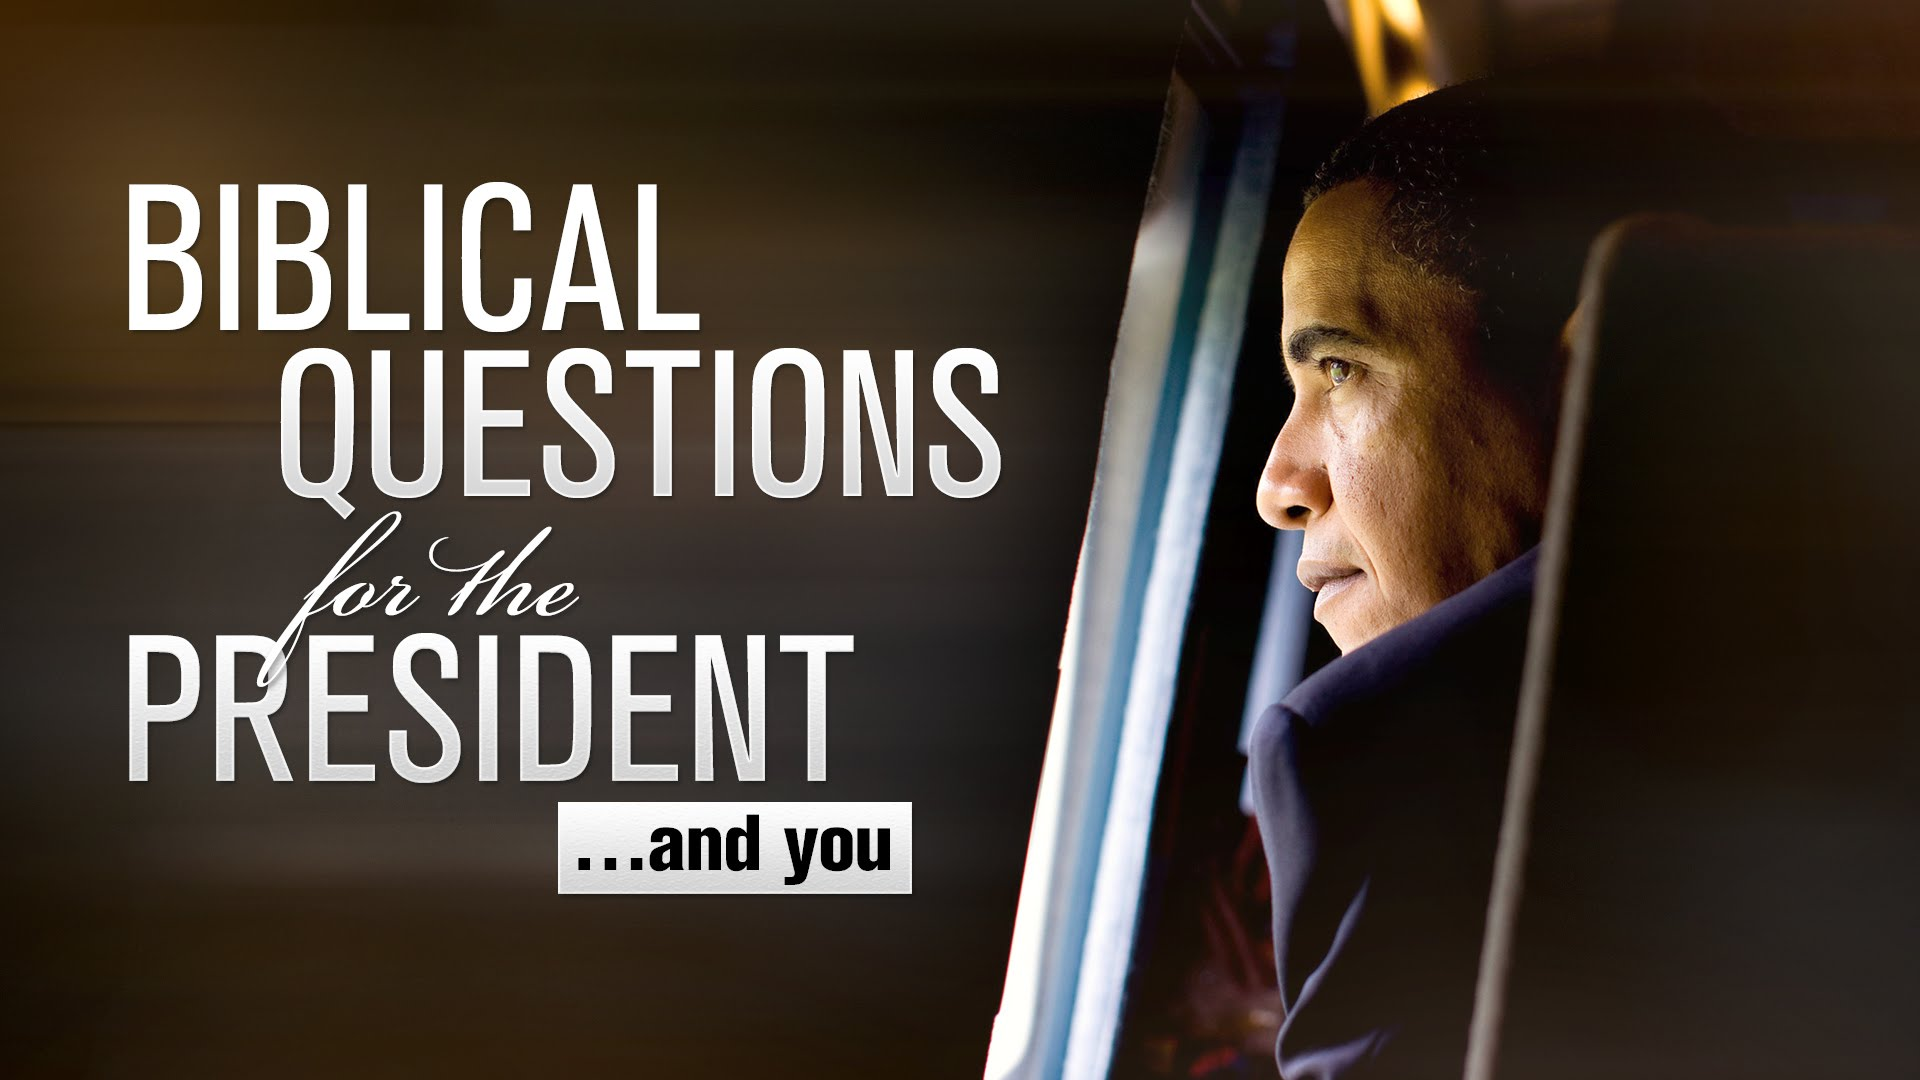 Biblical Questions for the President and You